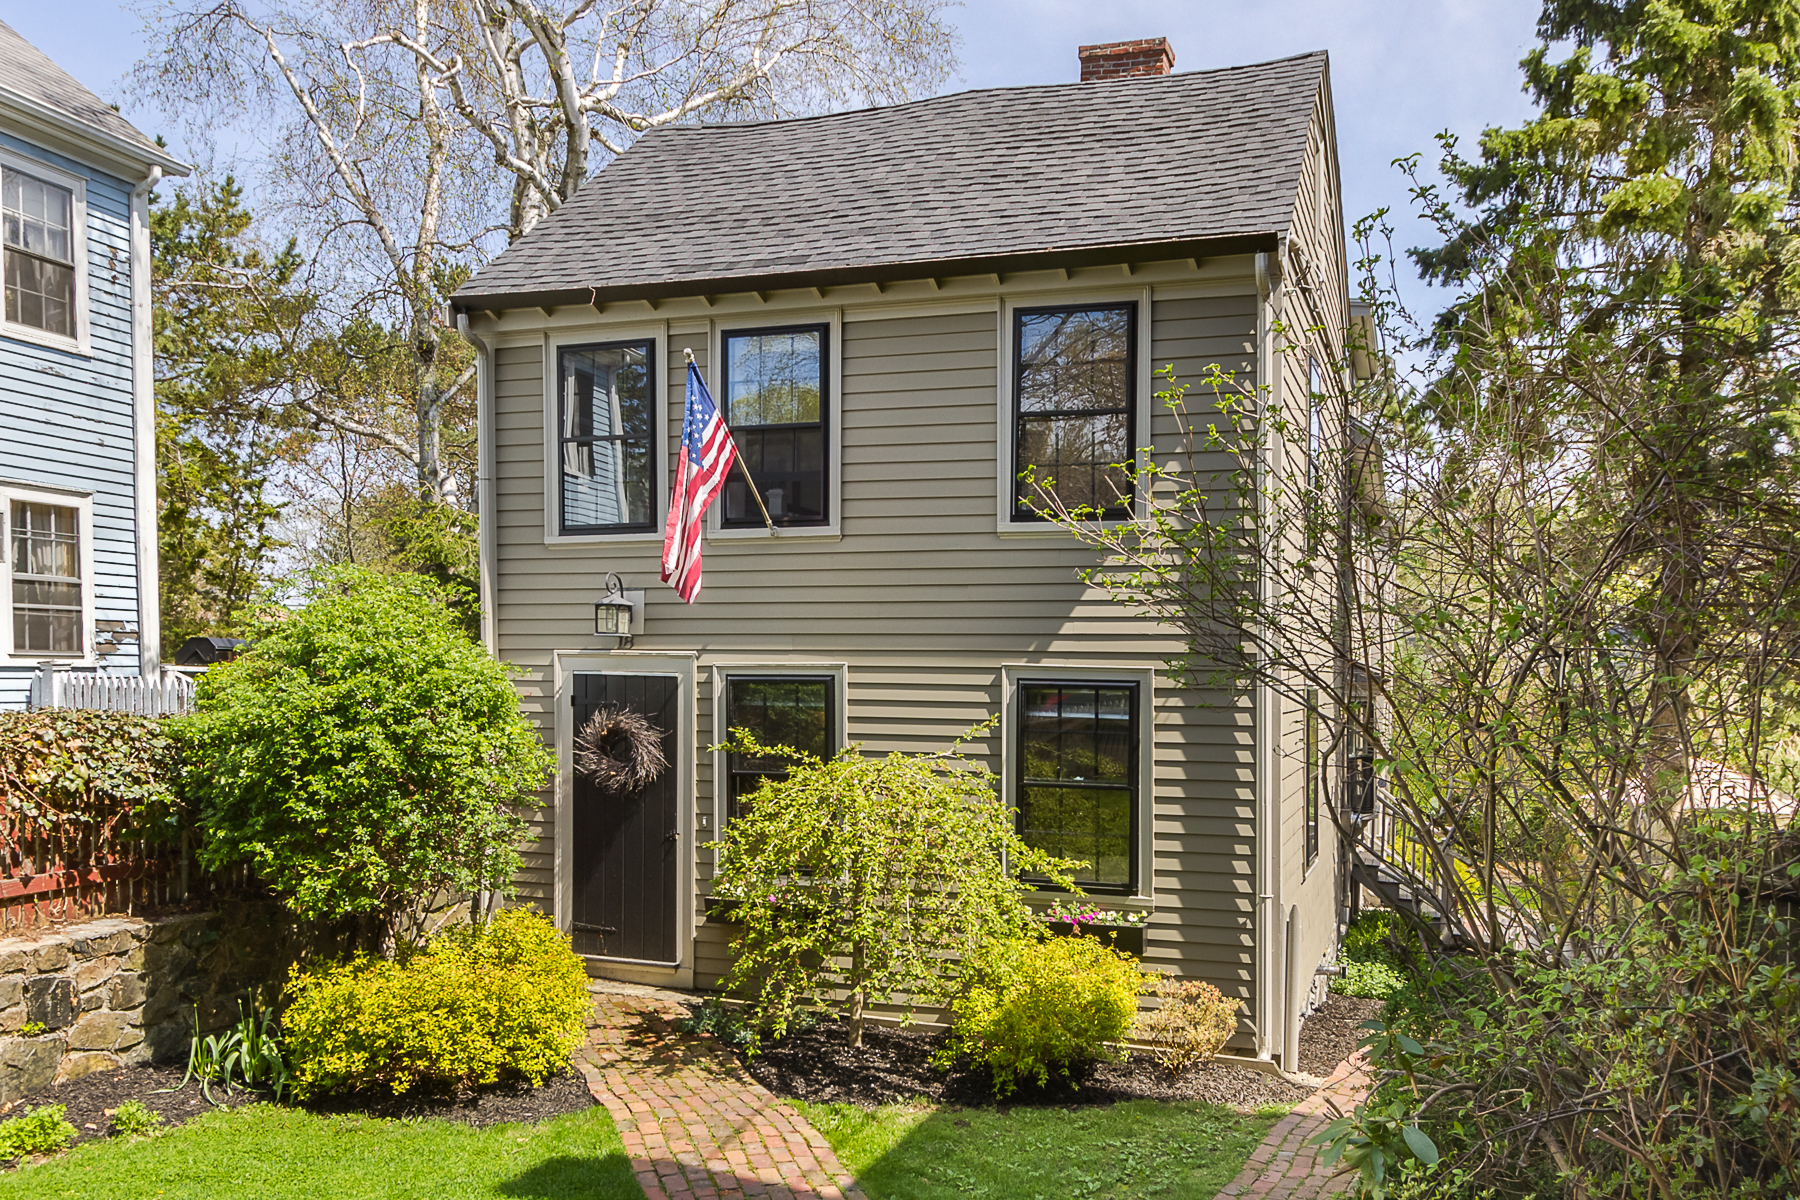 Single Family Home for Active at Quintessential Marblehead! 18 Stacey Street Marblehead, Massachusetts 01945 United States